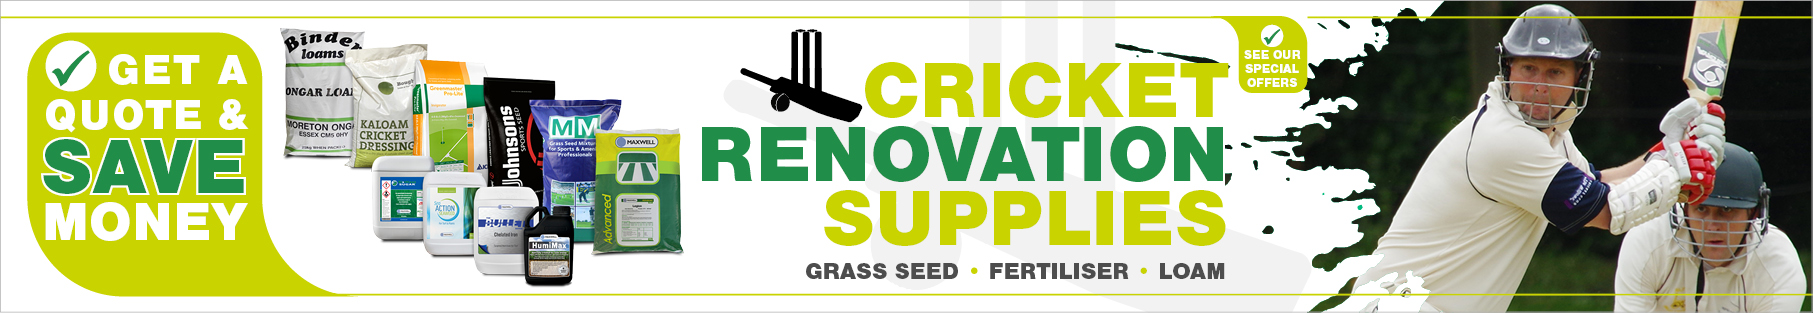 Cricket Renovation 2017 Product Page Banner 870x150